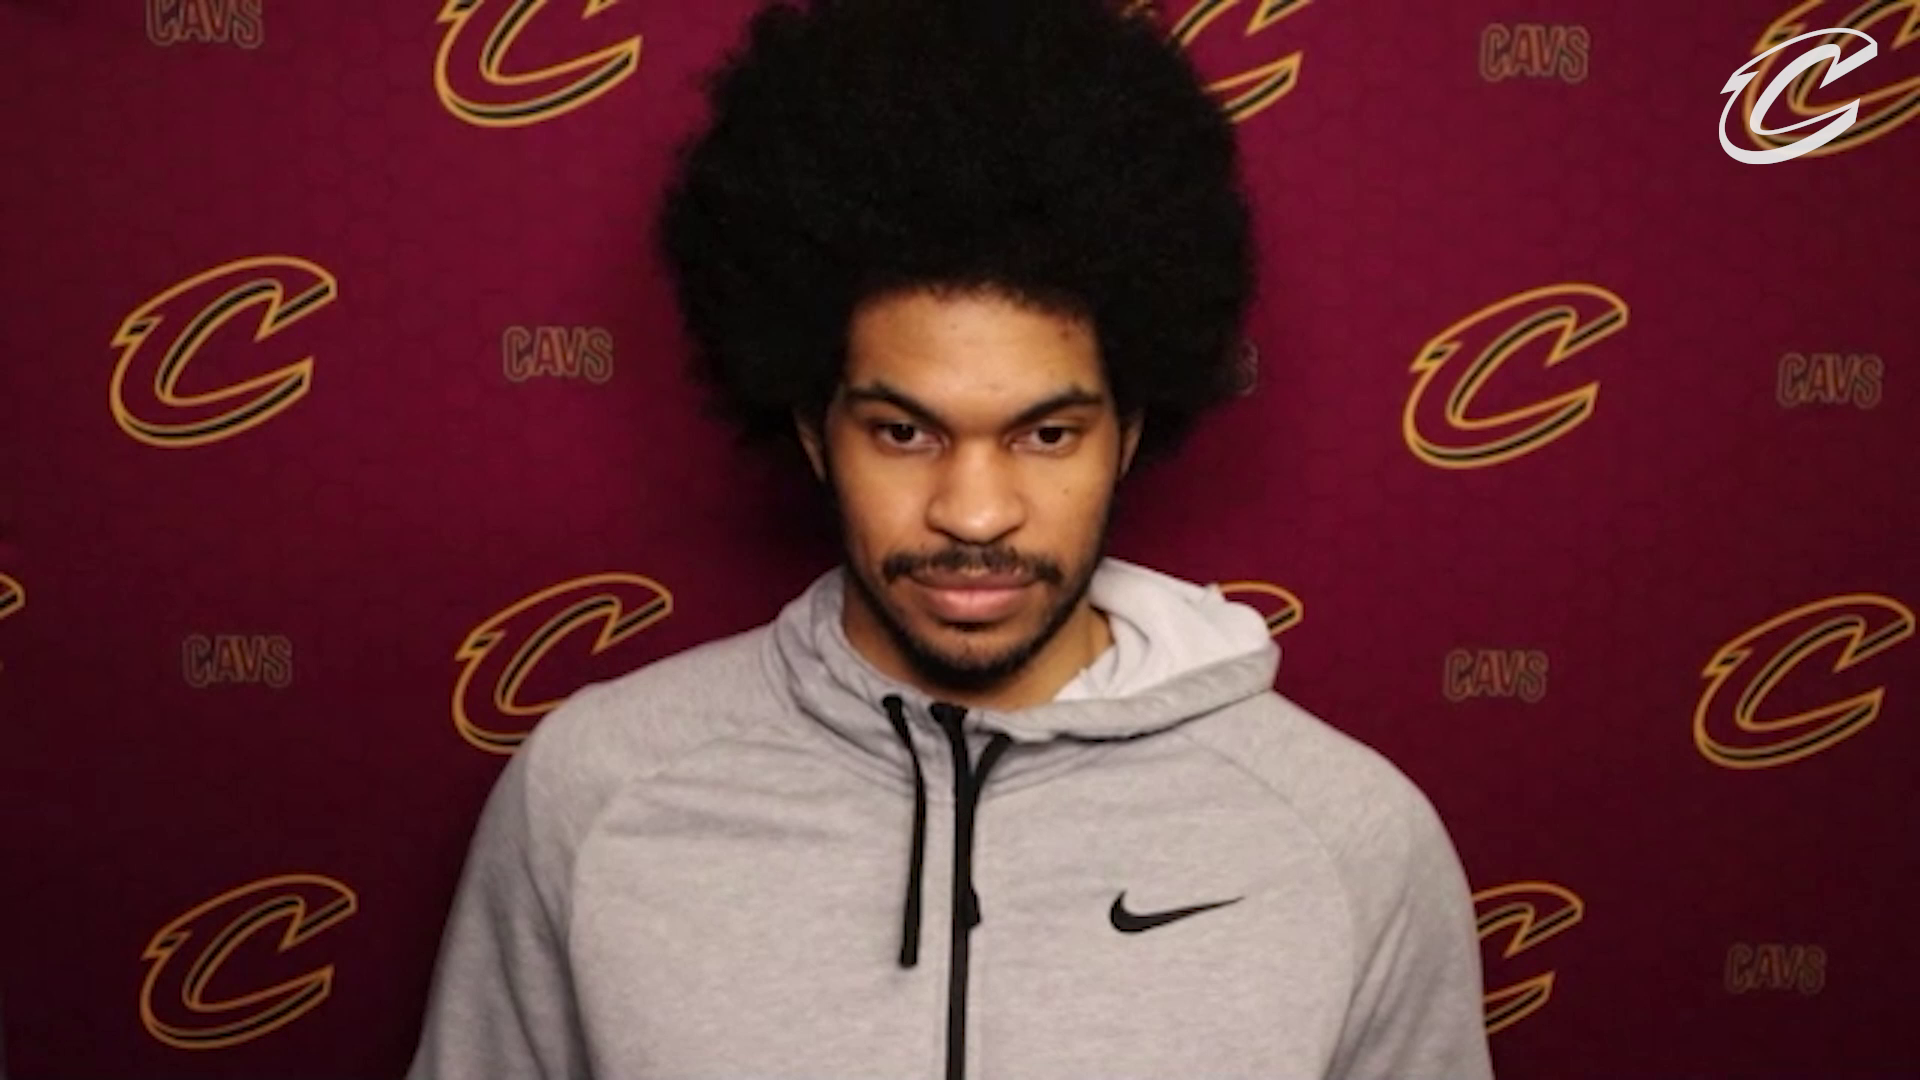 Cavs at Lakers Postgame: Jarrett Allen